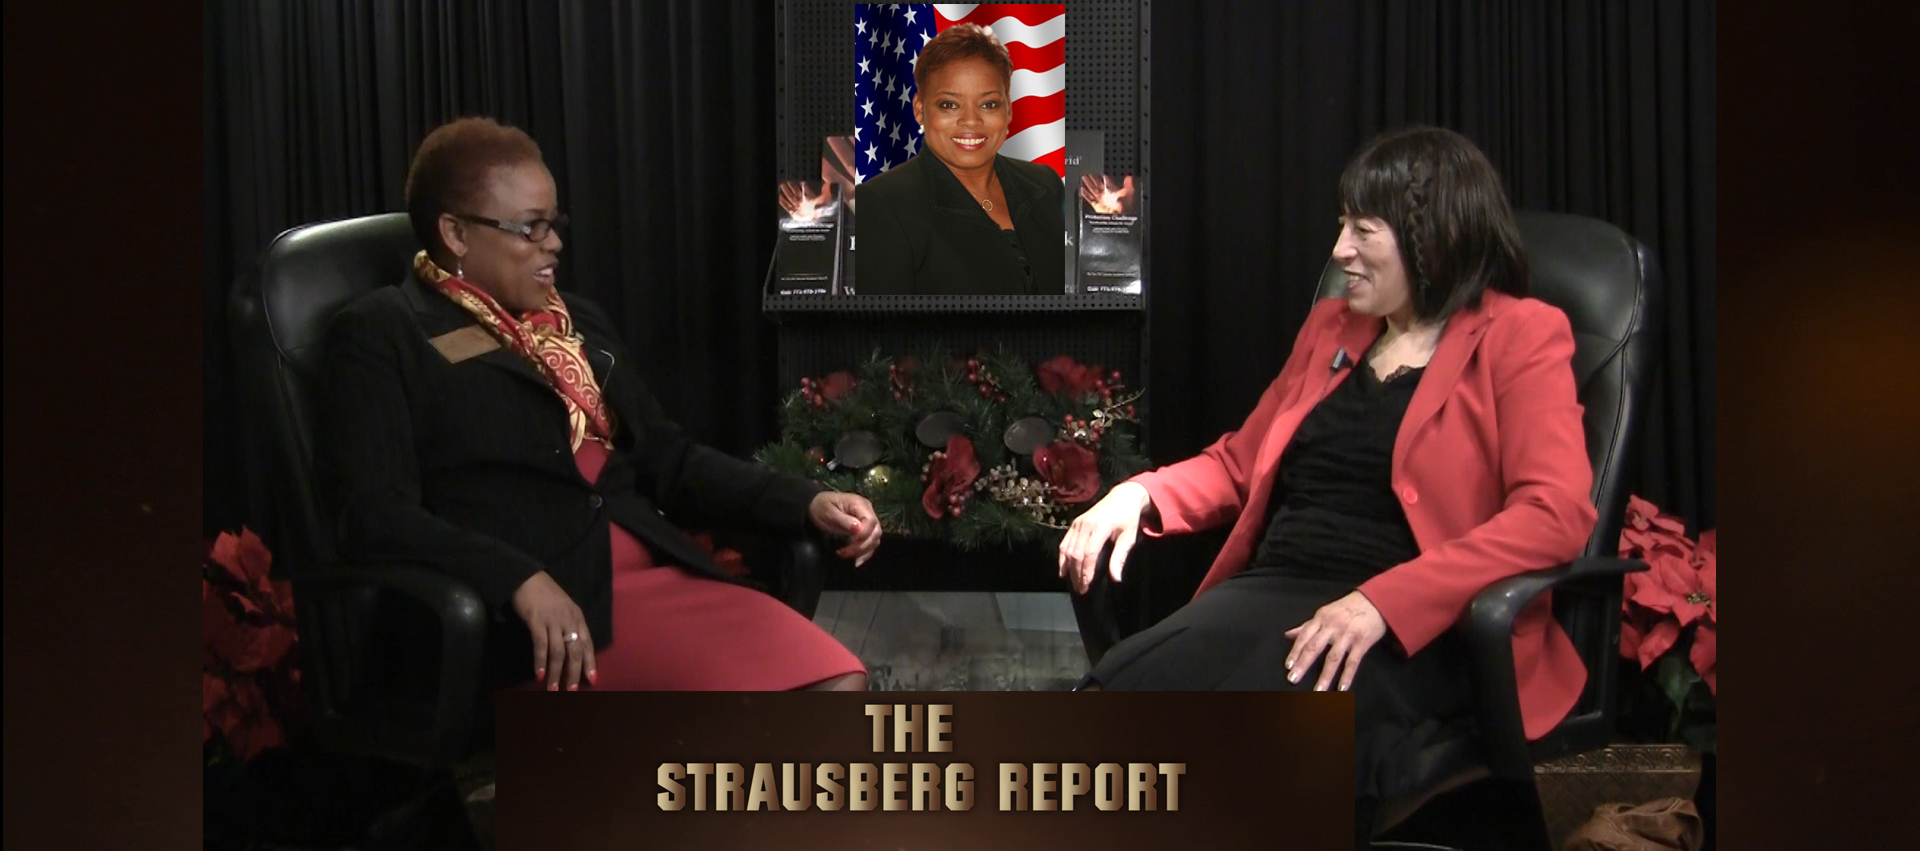 Commissioner Patricia Horton on the Strausberg Report